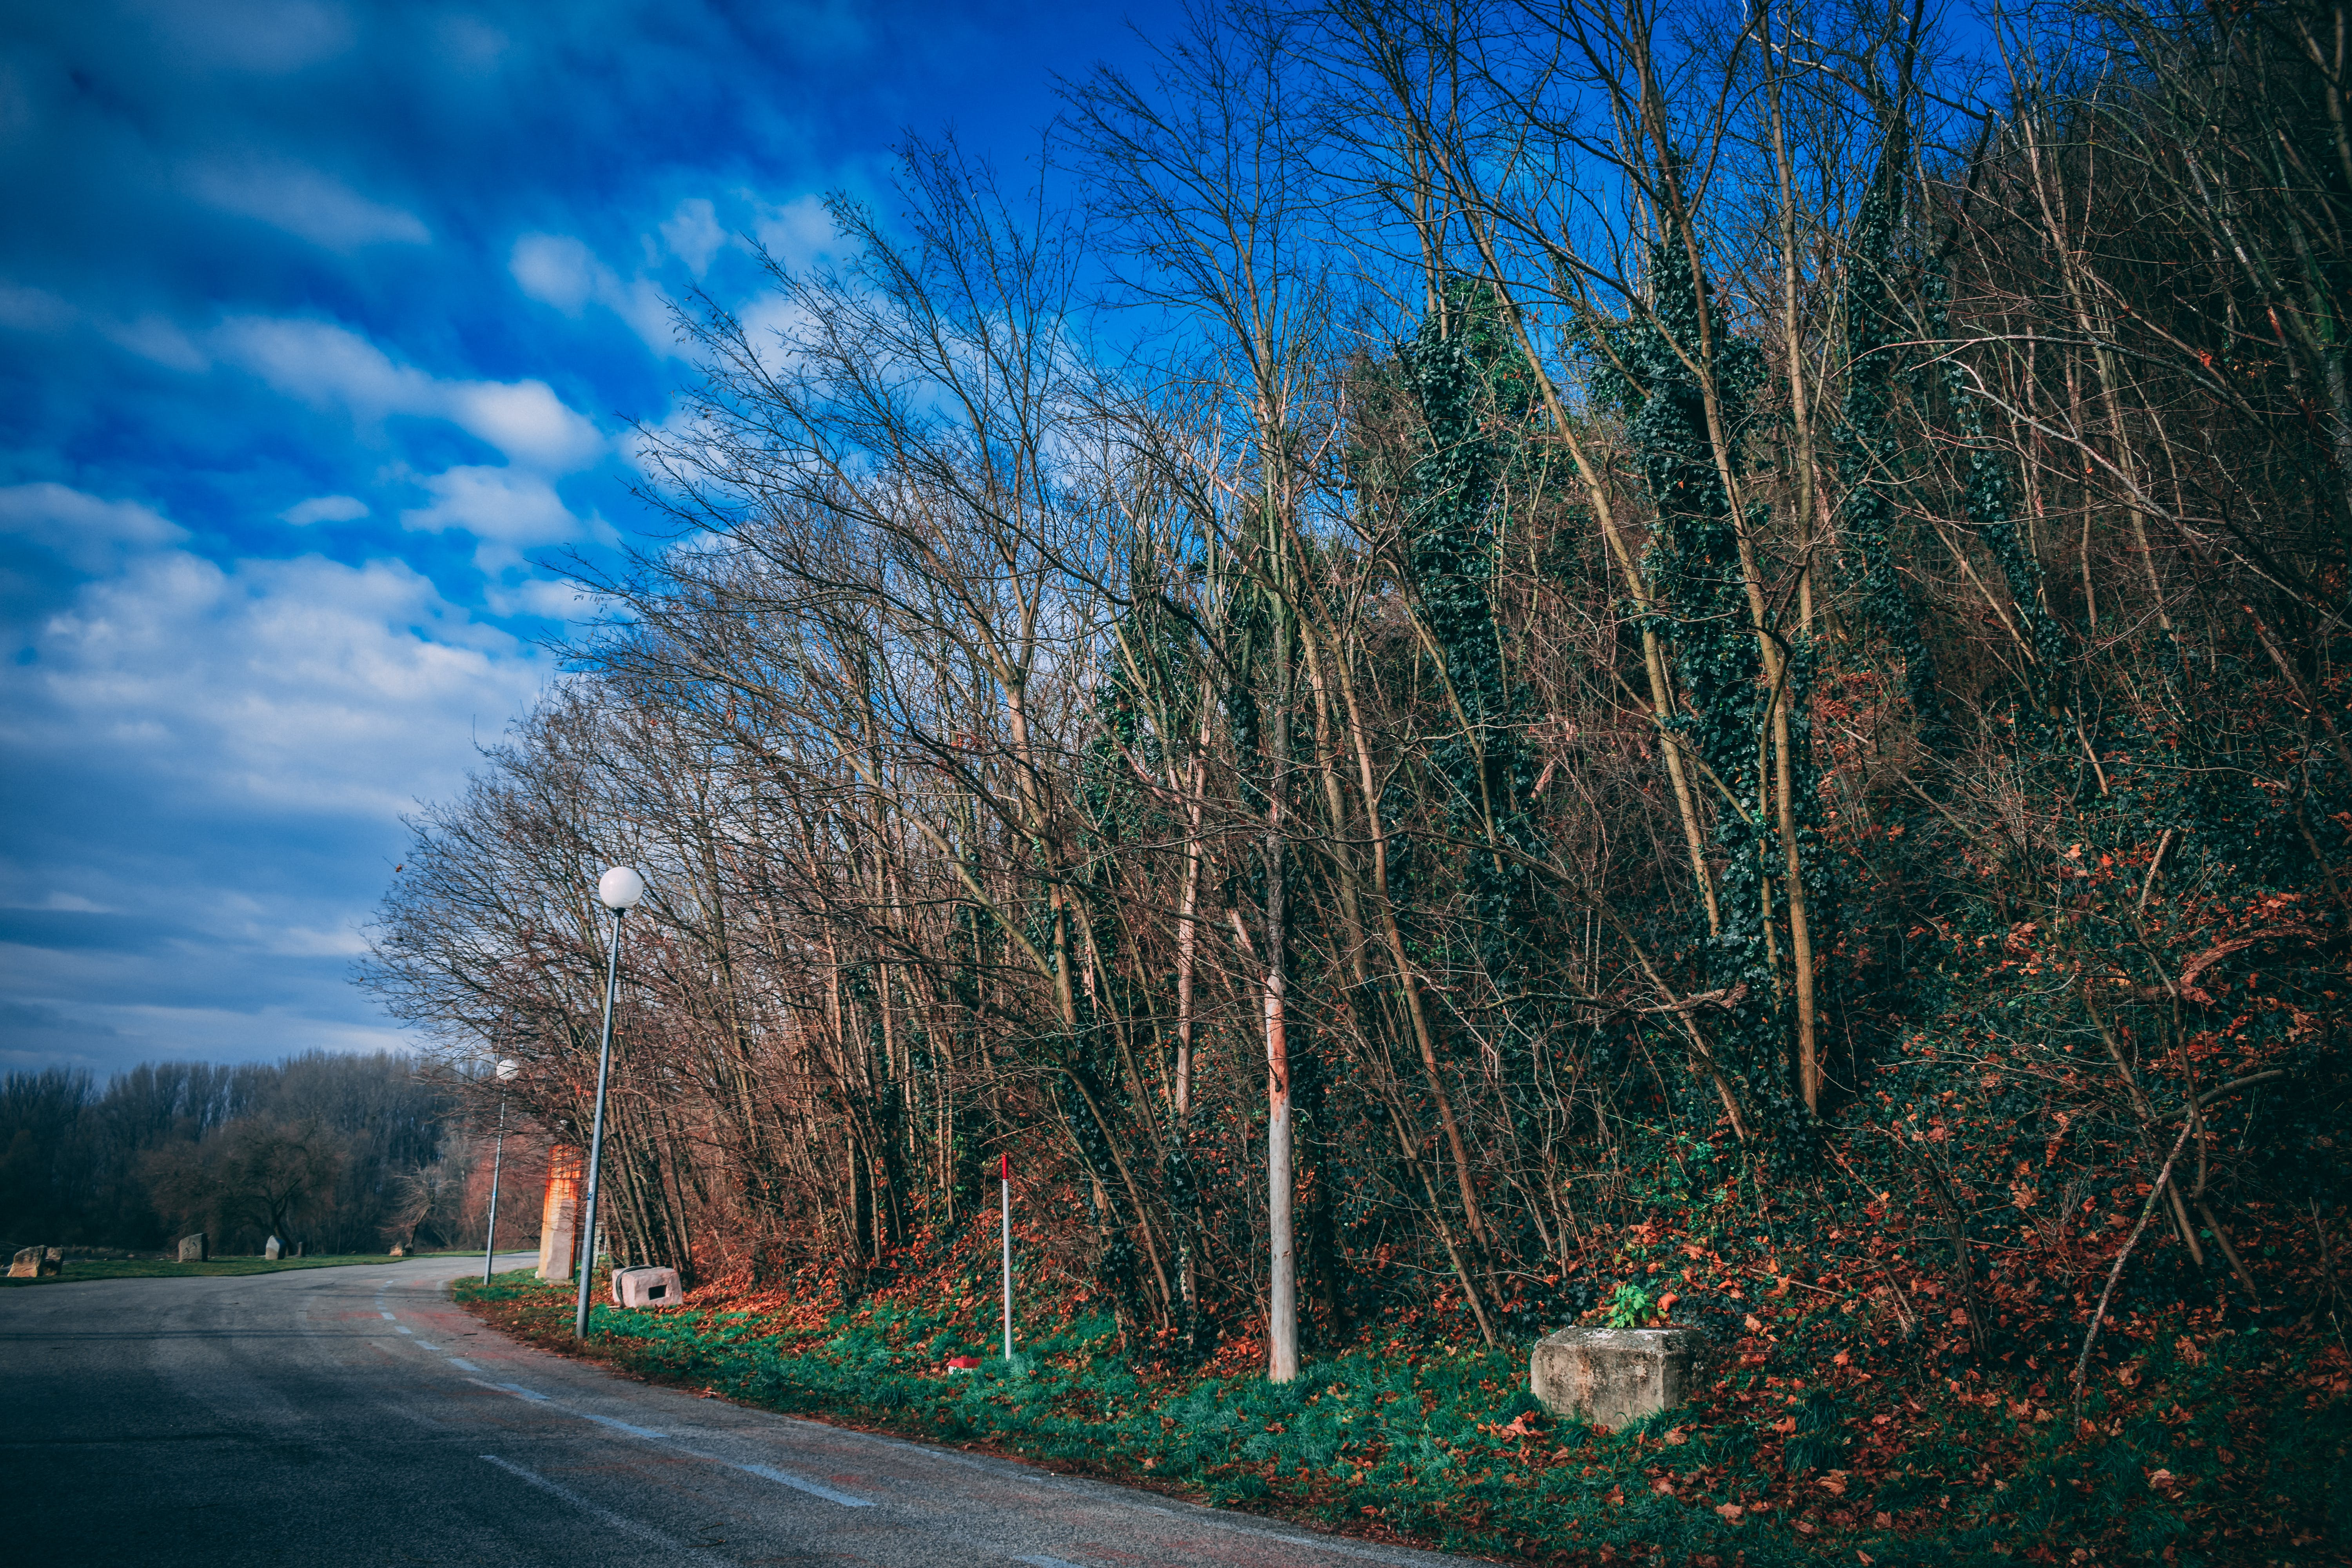 Trees By The Road